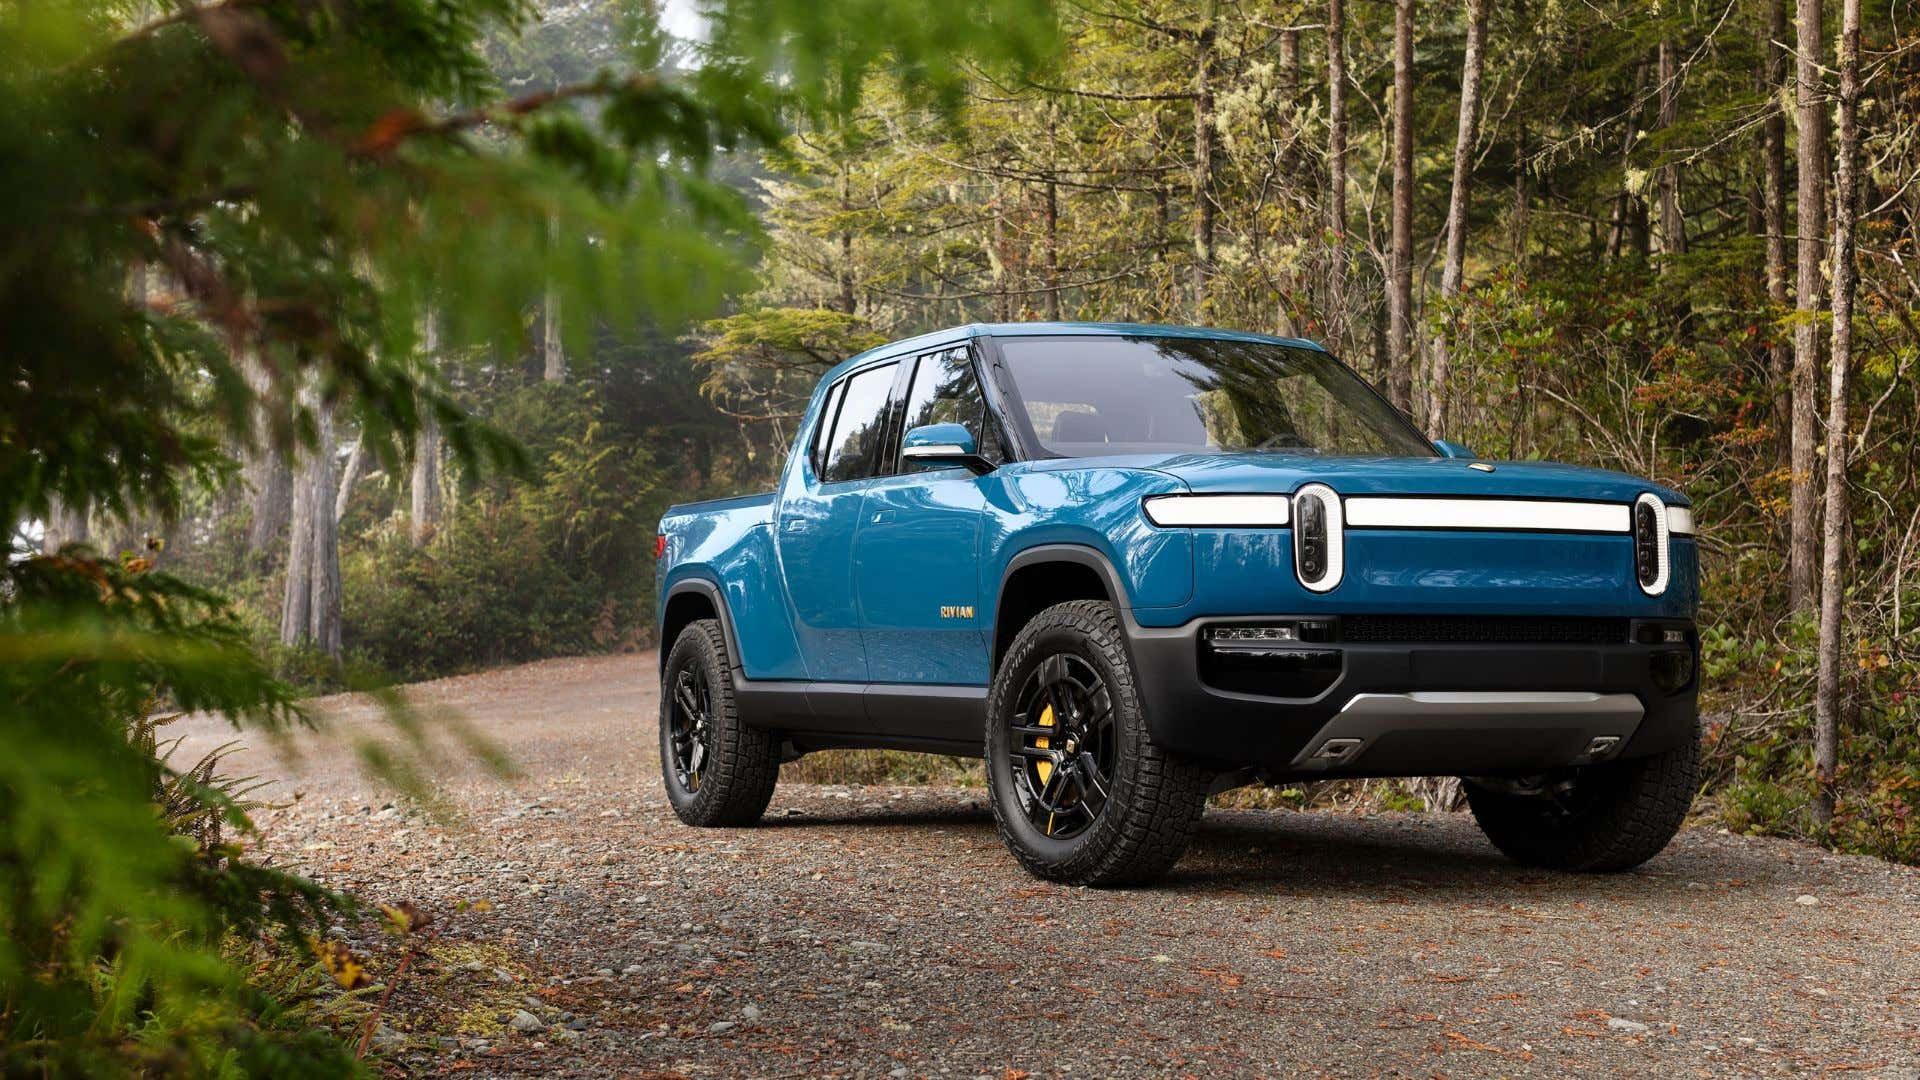 Rivian looking good among the forest in blue.